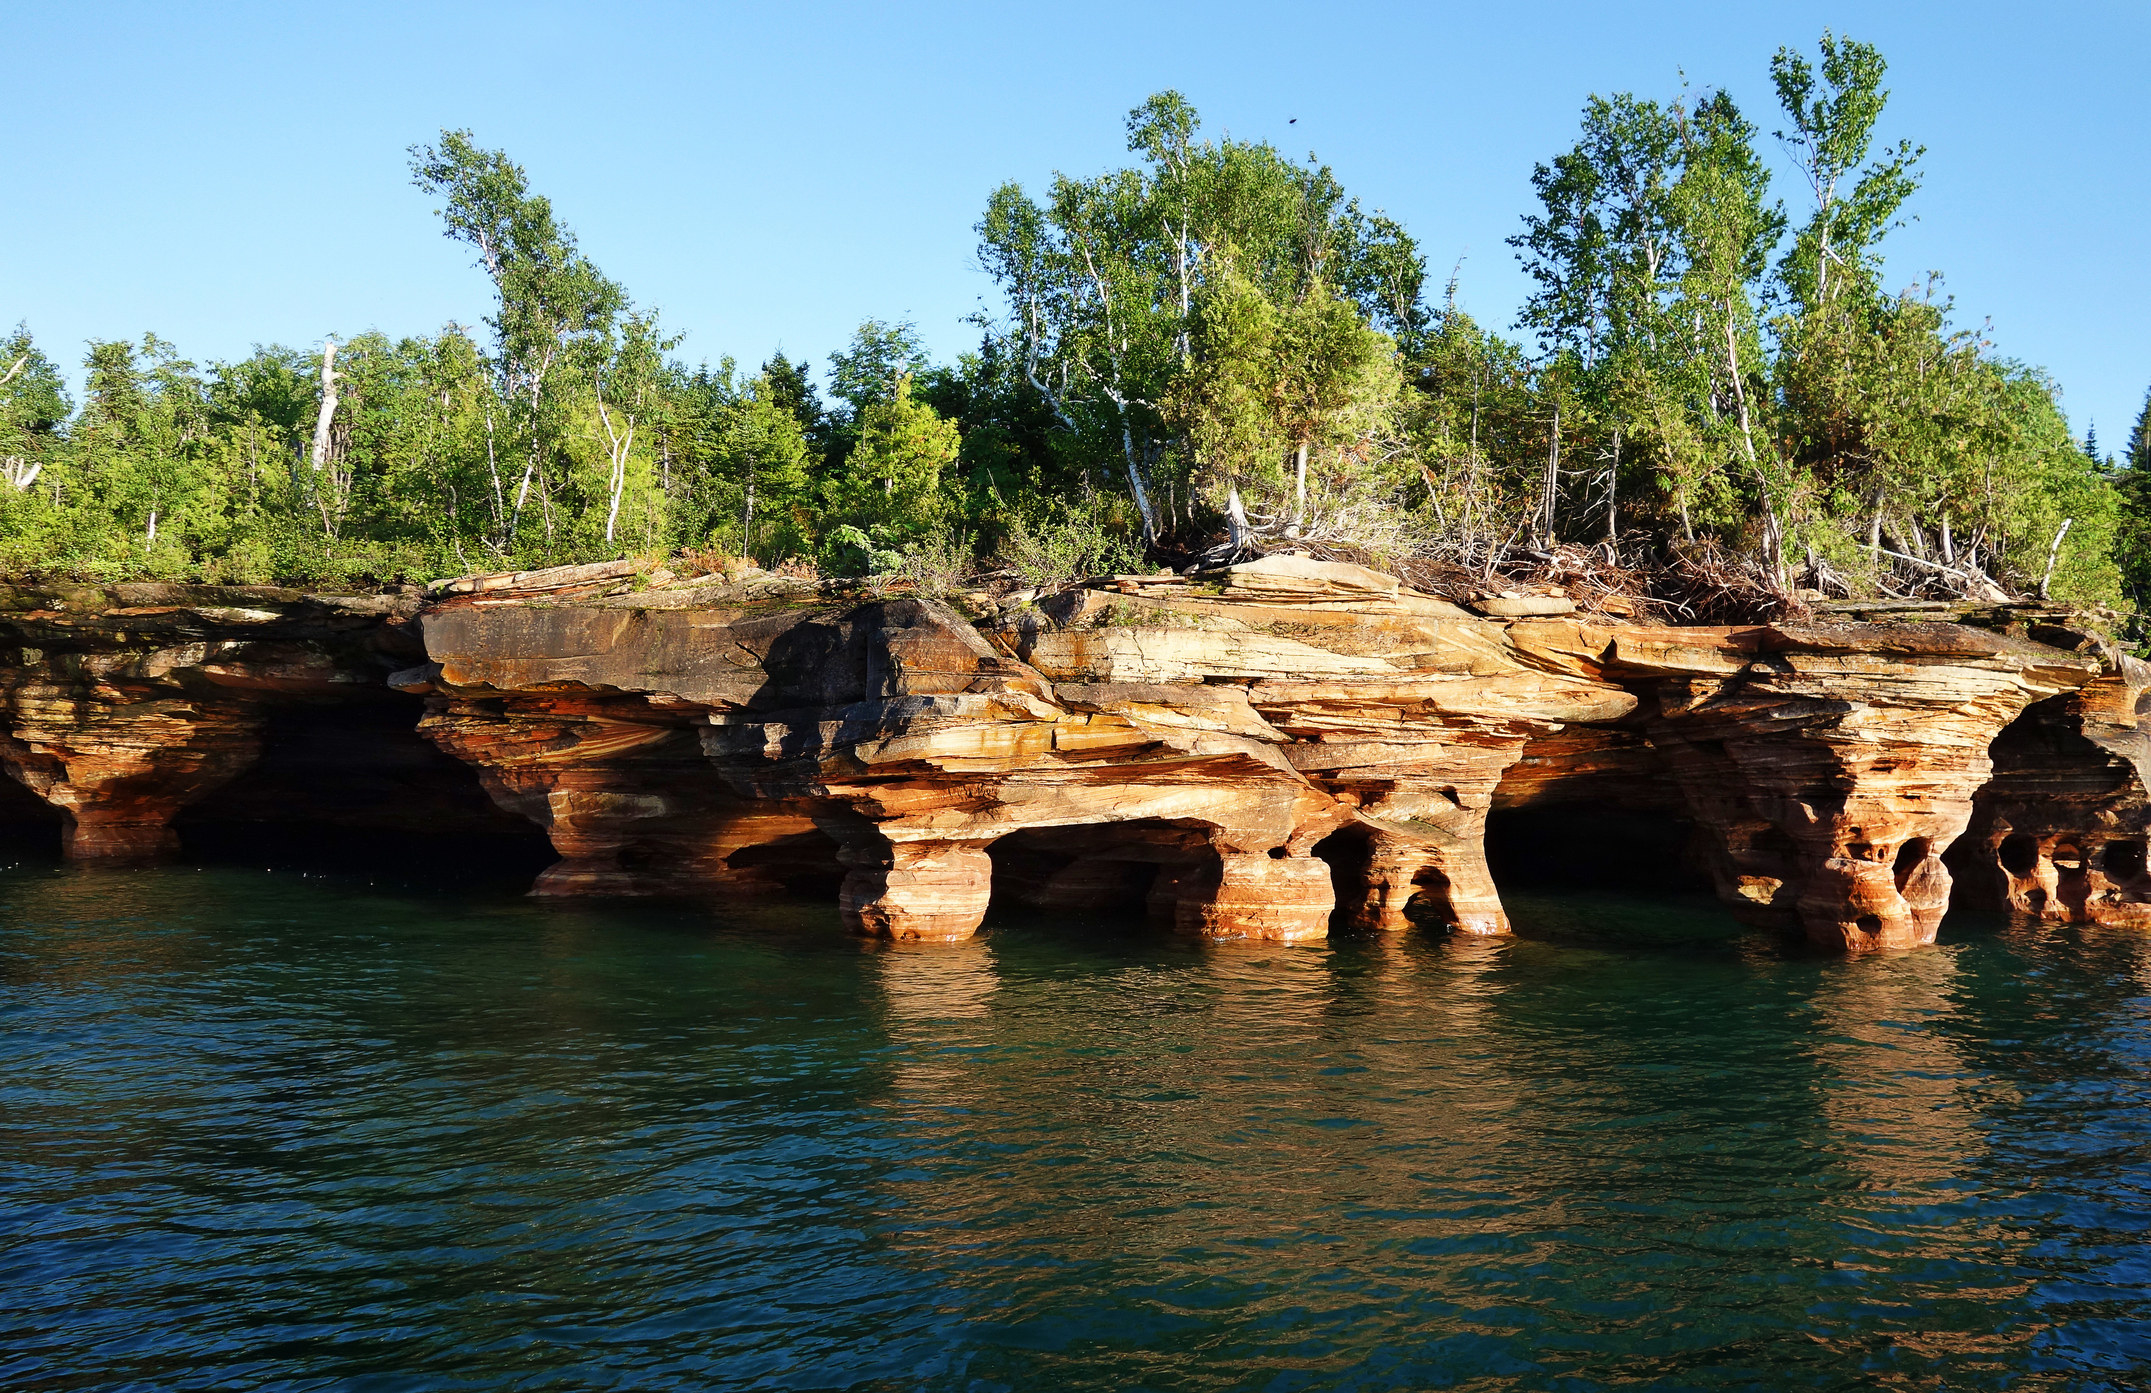 Short rocky cliffs dotted with small caves